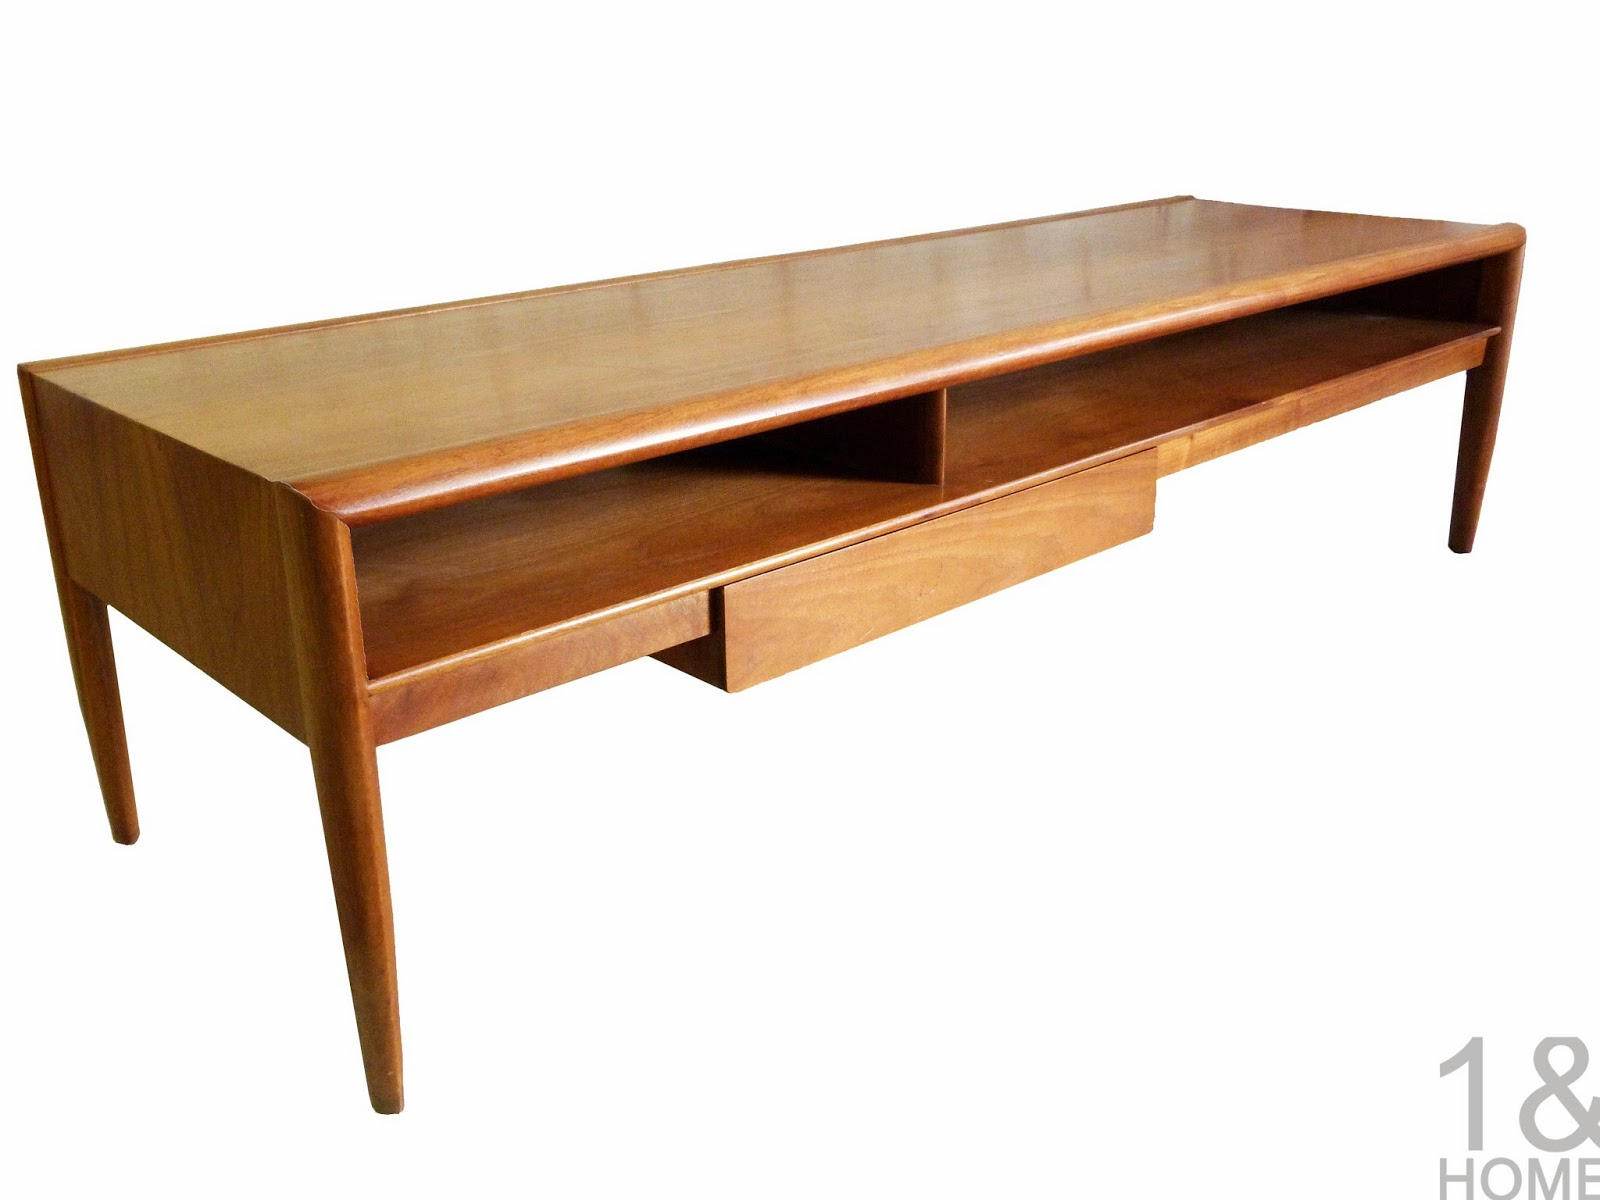 Drexel Parallel Mid-Century Modern Coffee Table by Barney Flagg